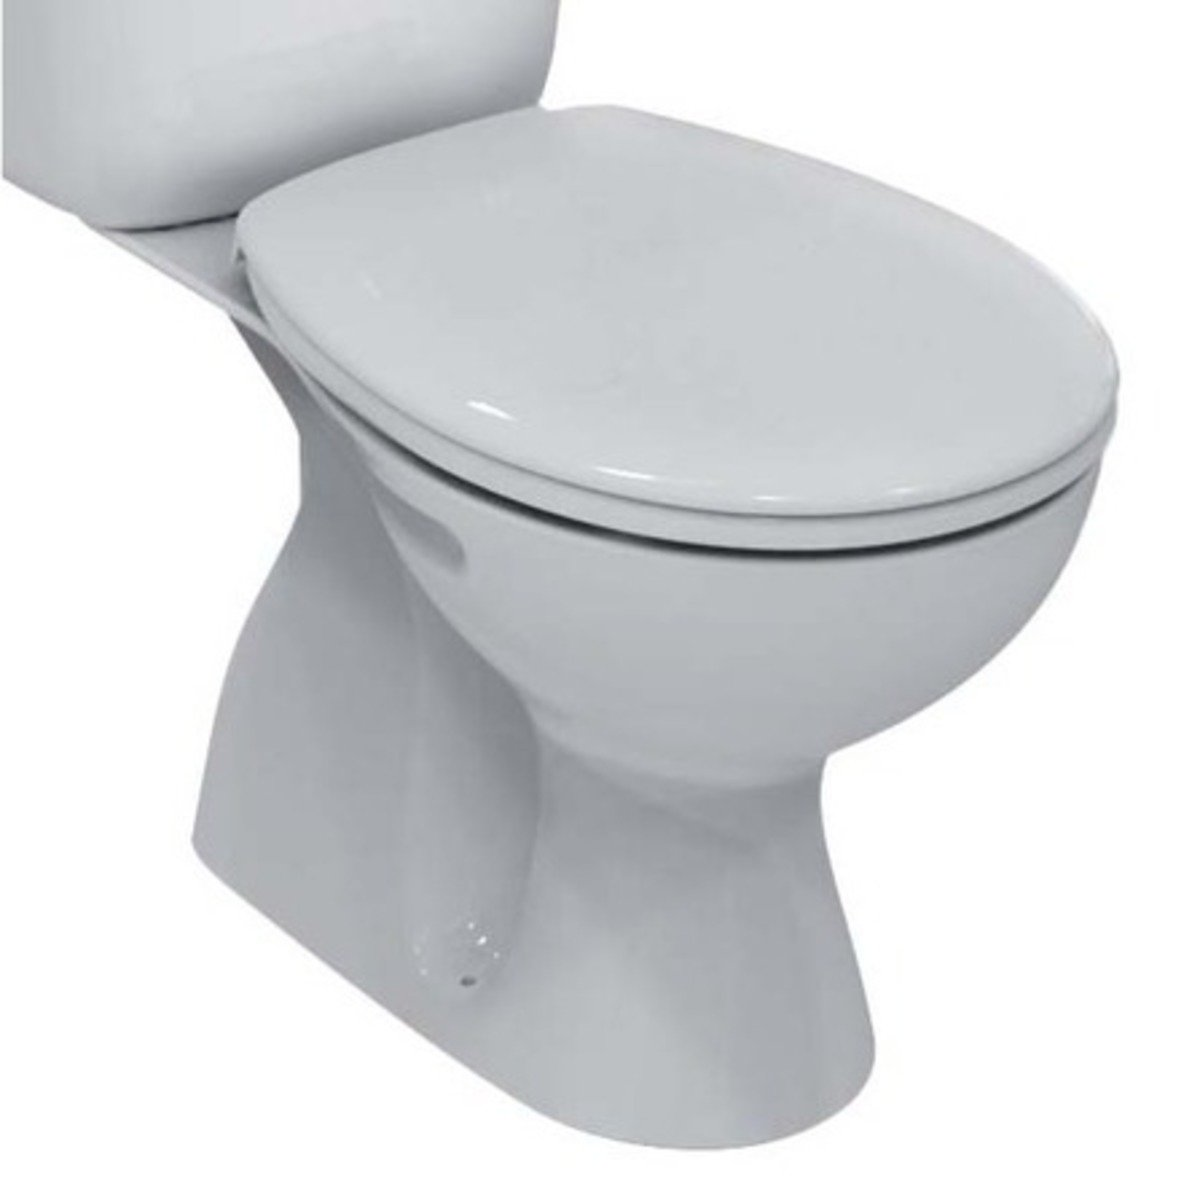 Toilet Vlakspoel Ideal Standard Simplicity Wc Cuvette Uitgang Ca Porselein